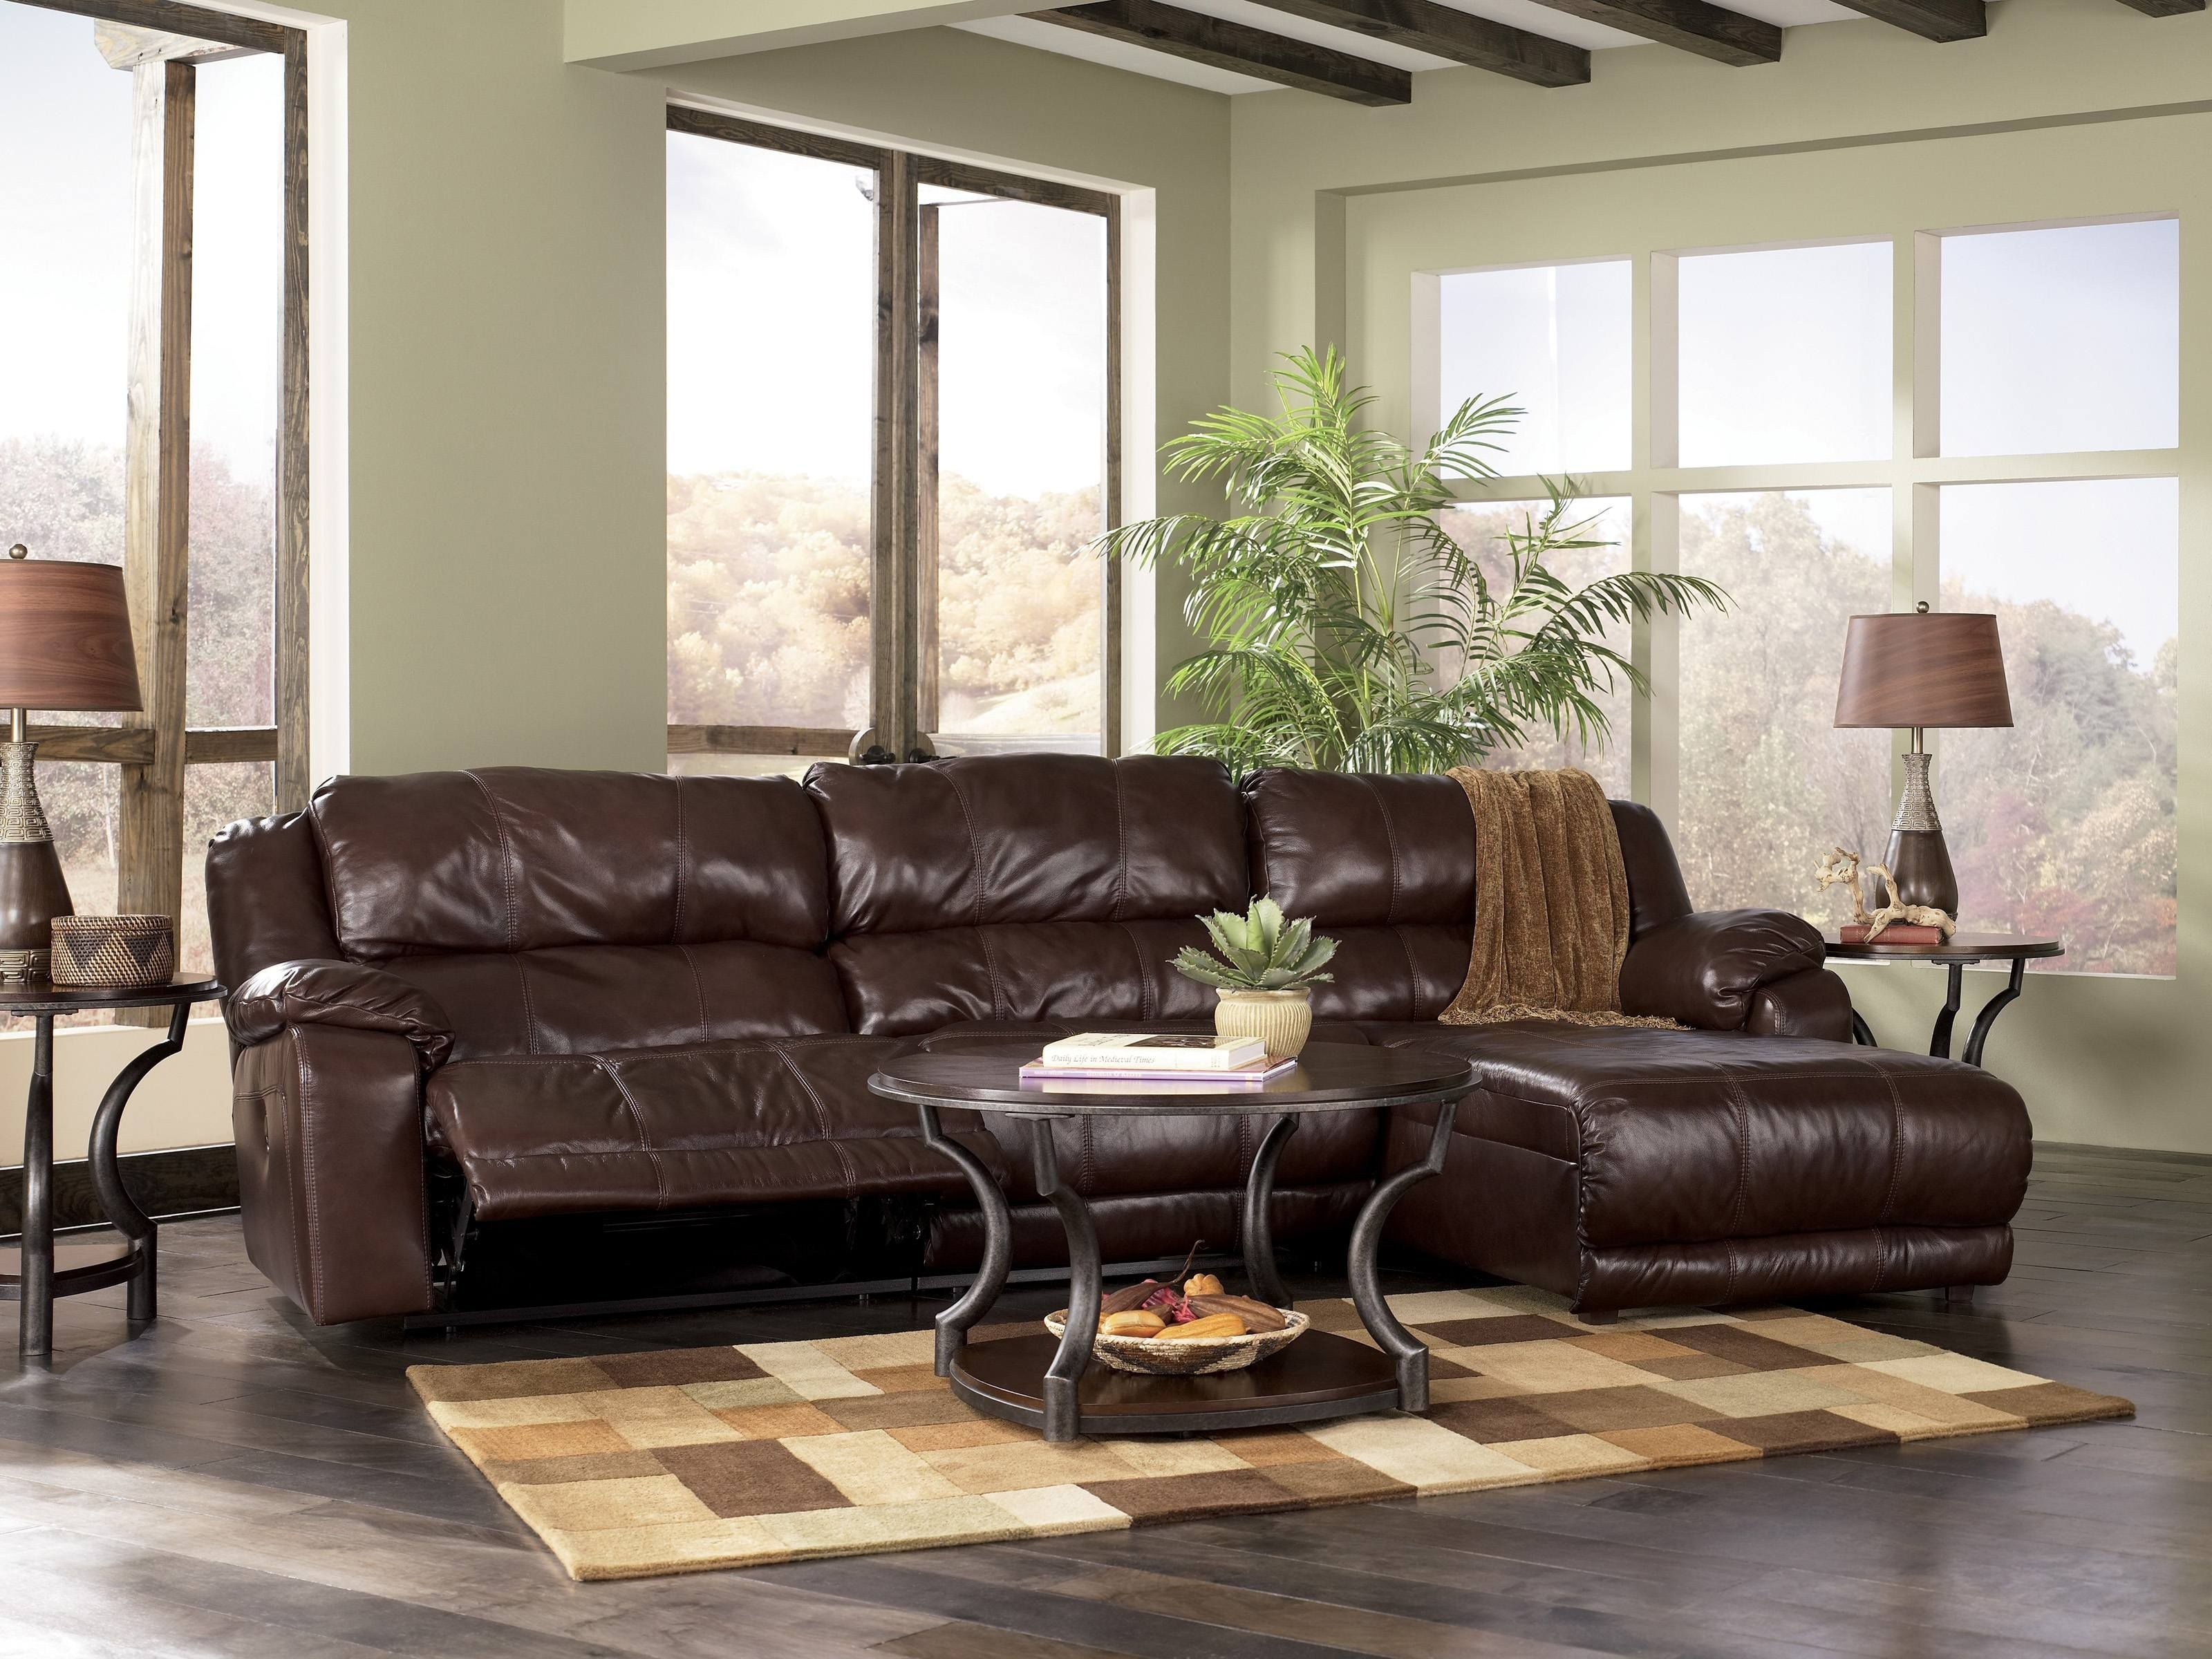 Sectional Sofas With Recliners | Johnson Leather Sofa With Recliner For Knoxville Tn Sectional Sofas (View 8 of 10)